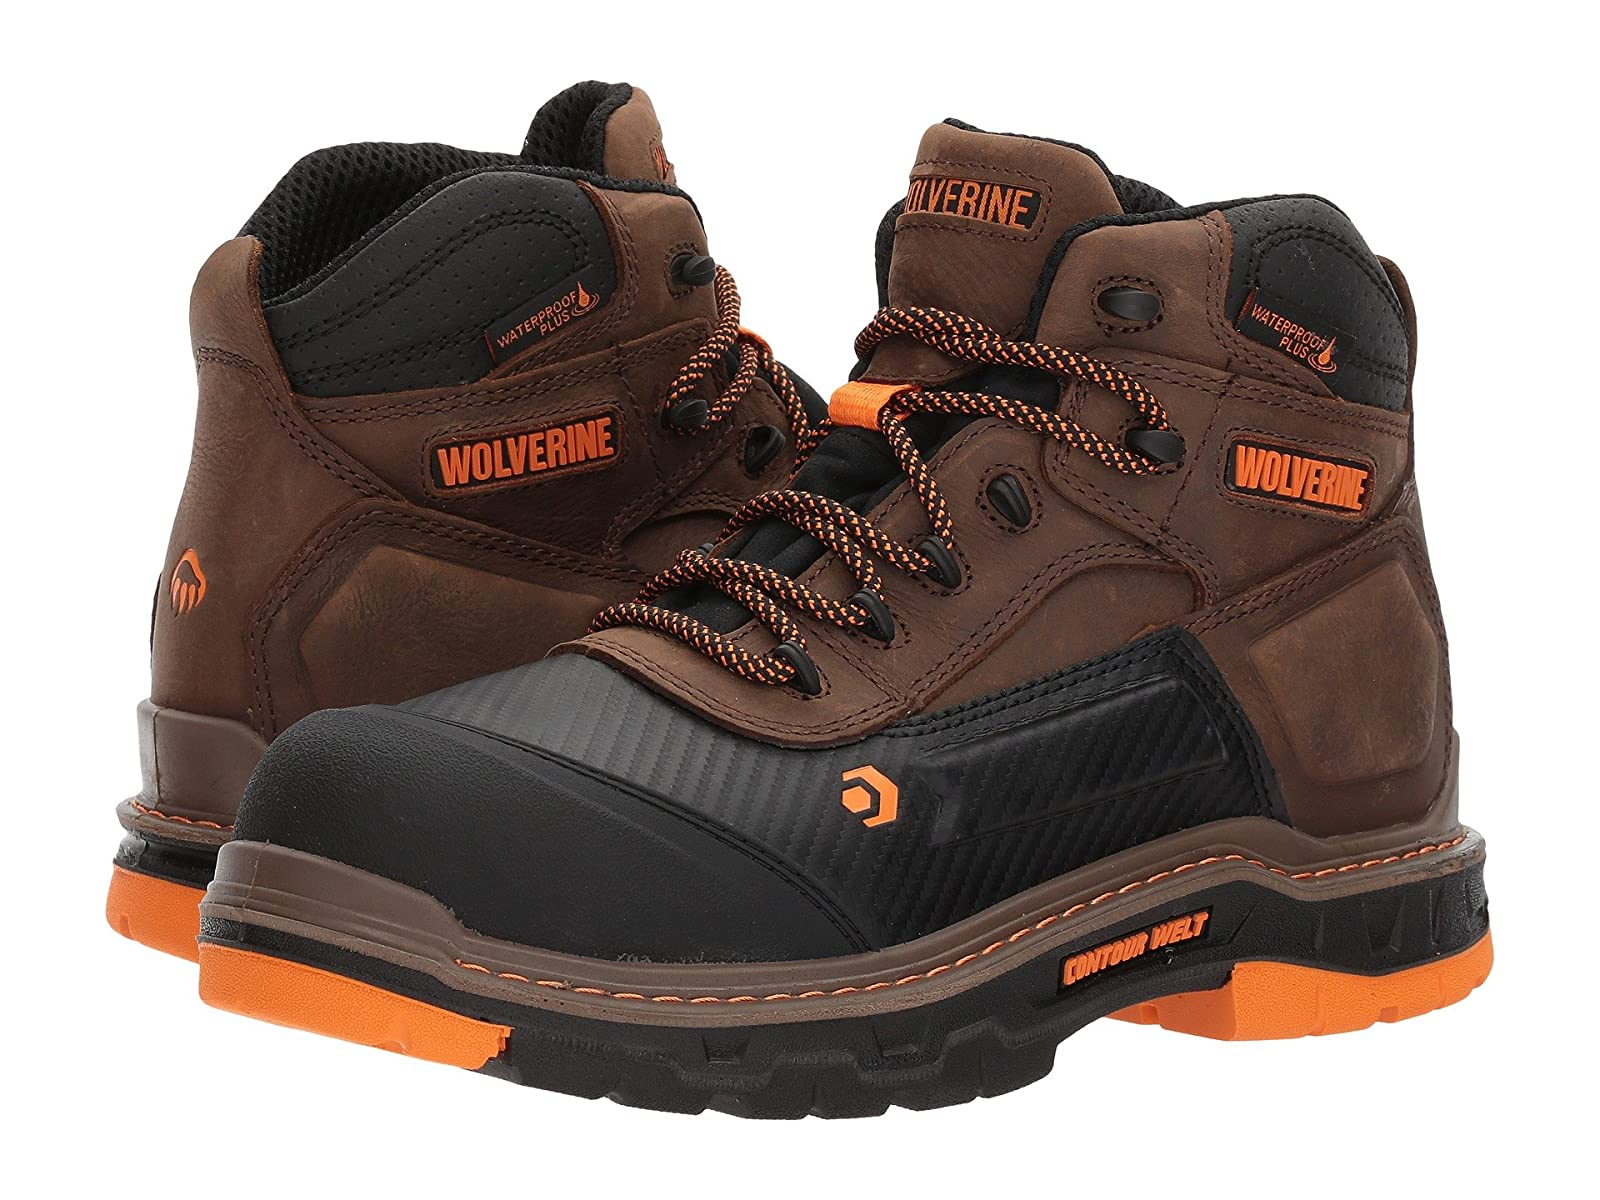 Wolverine Overpass Mid CompositeEconomical and quality shoes